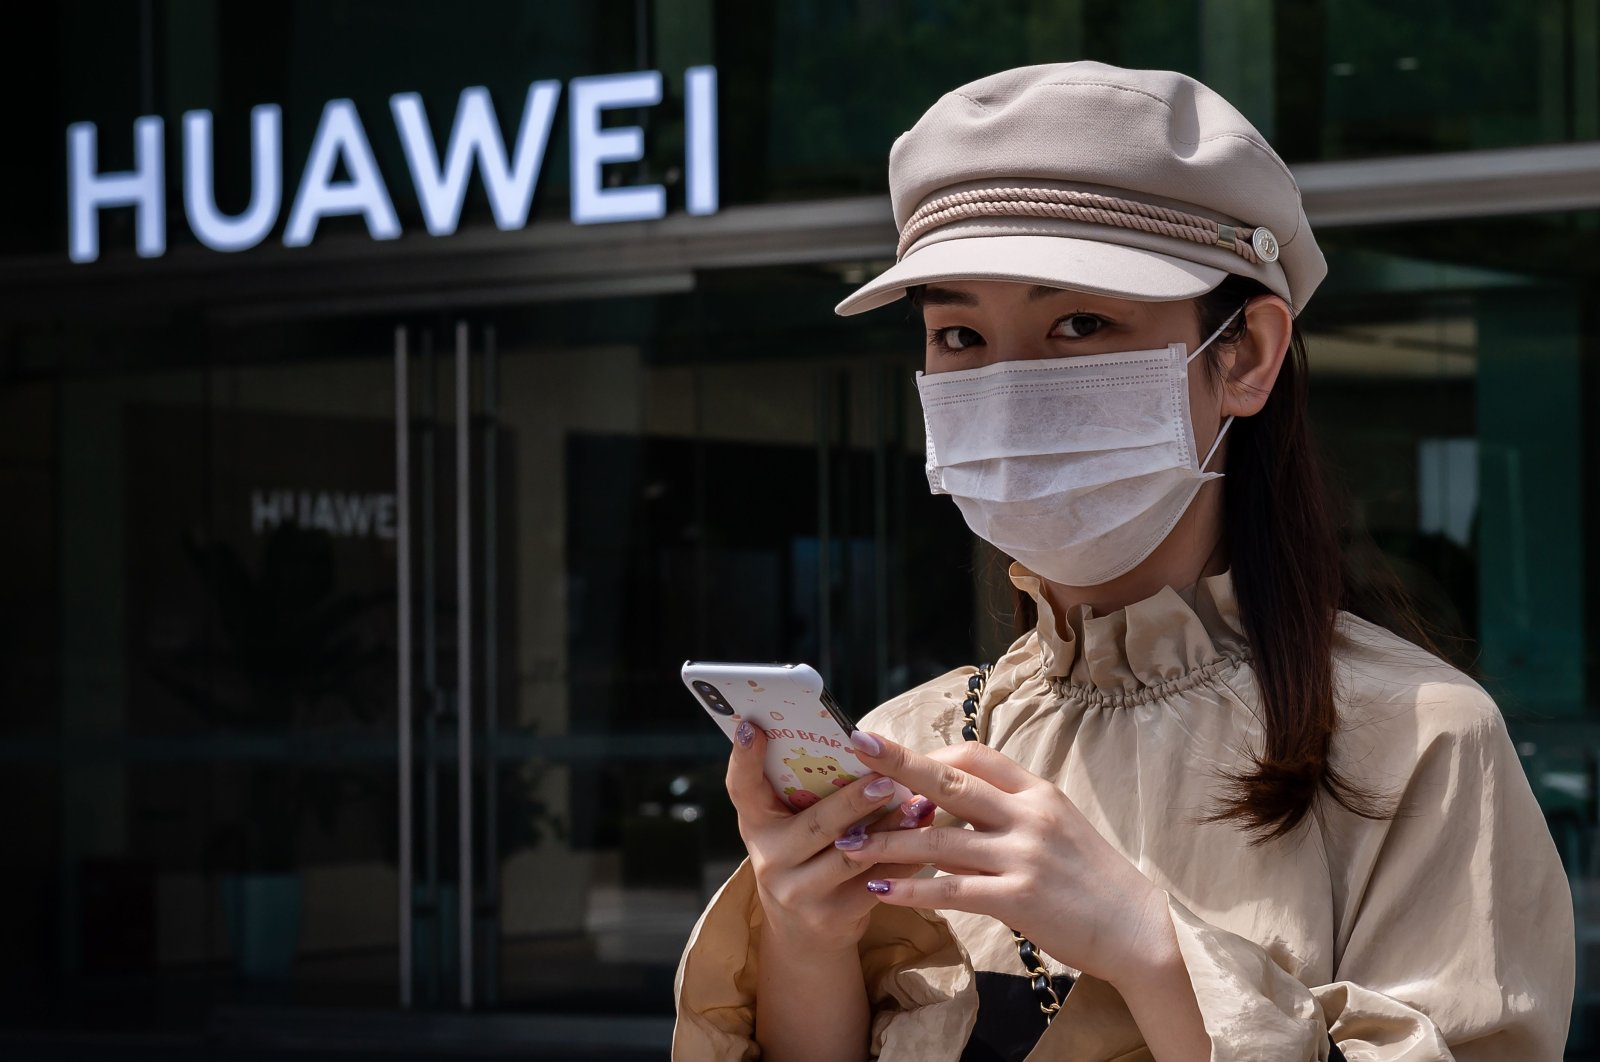 A woman walks past a shop for Chinese telecoms giant Huawei in Beijing, China, May 25, 2020. (AFP Photo)